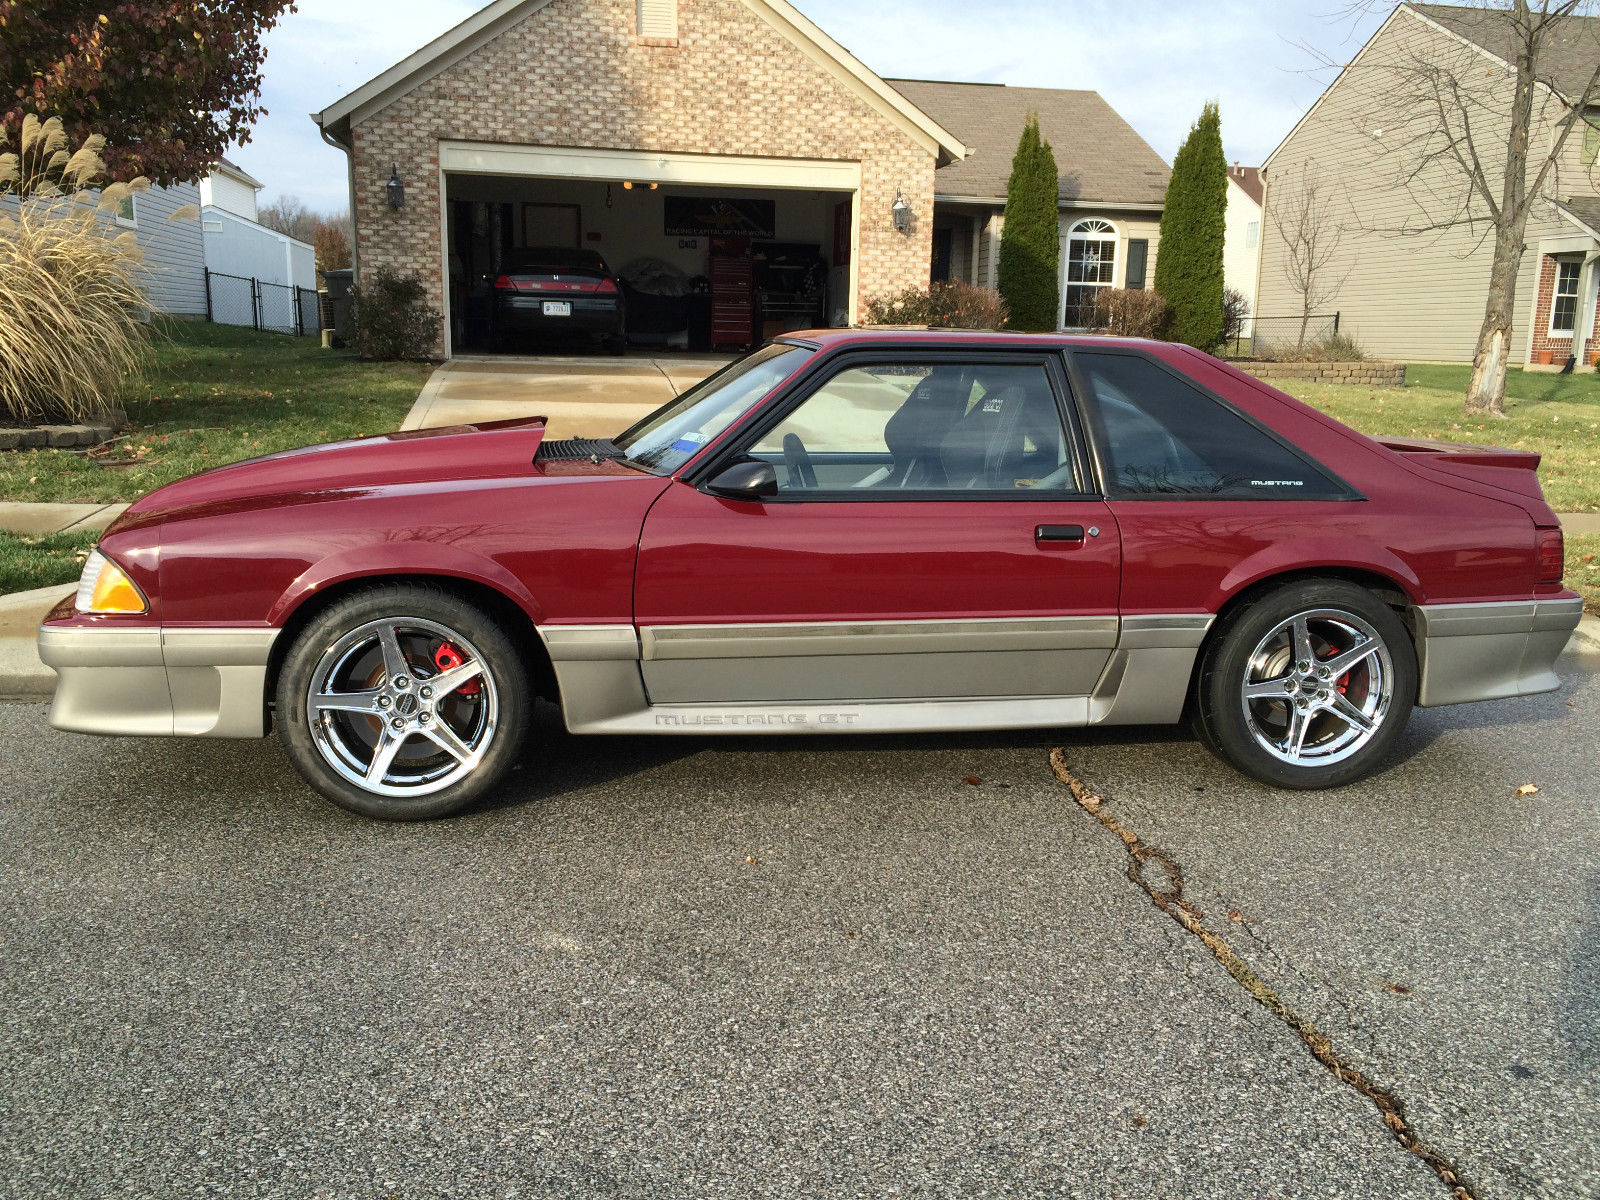 1989 mustang gt supercharged 2003 cobra disc brakes cage factory paint